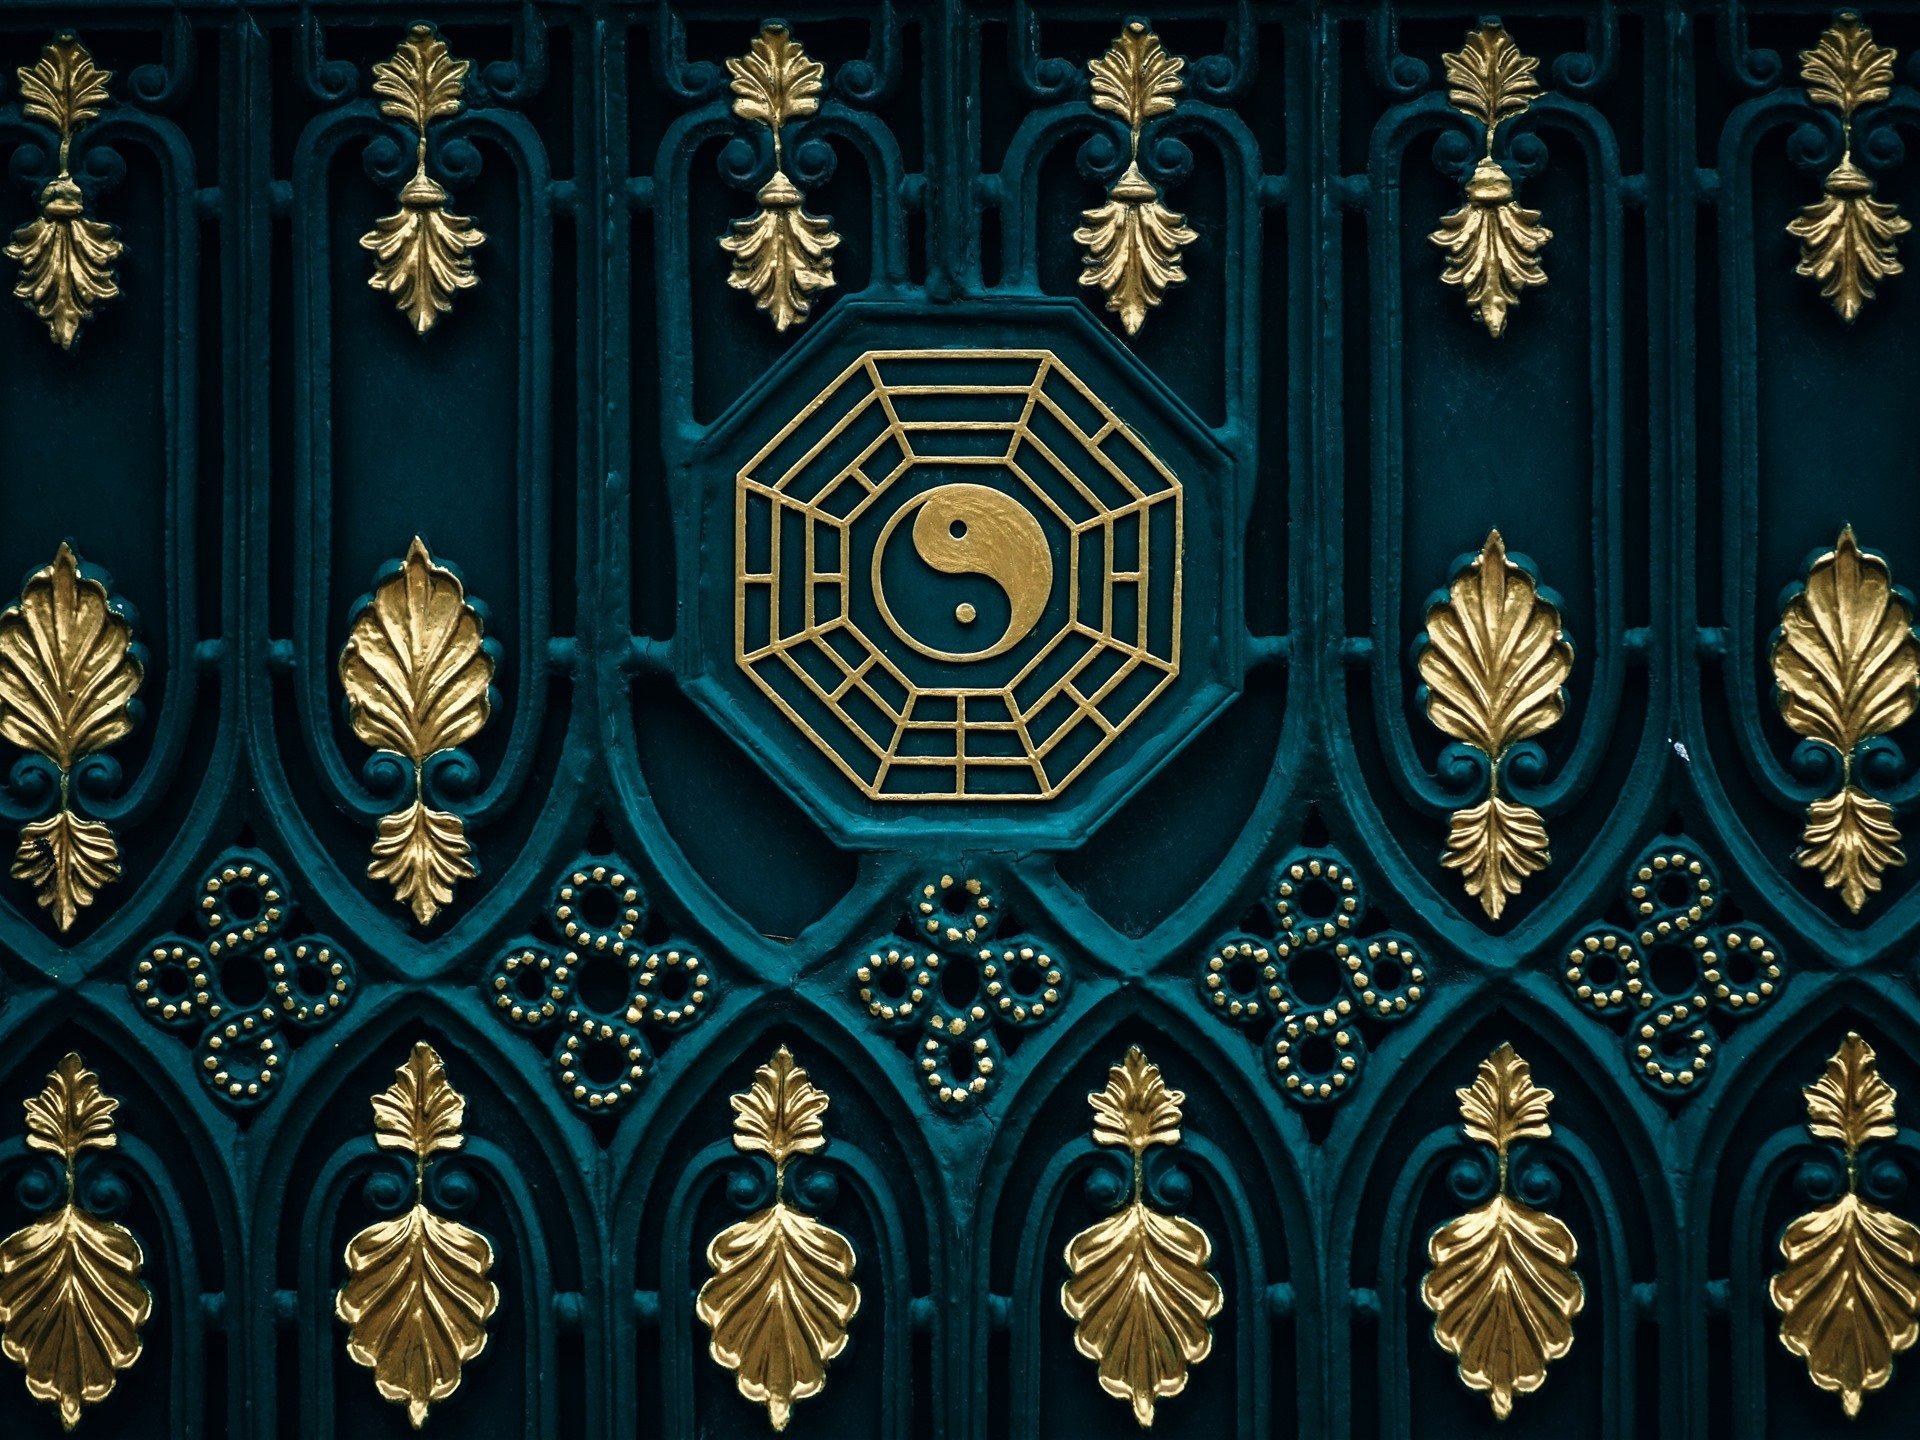 Wallpaper Bagua map yin yang door 5120x2880 UHD 5K Picture Image 1920x1440